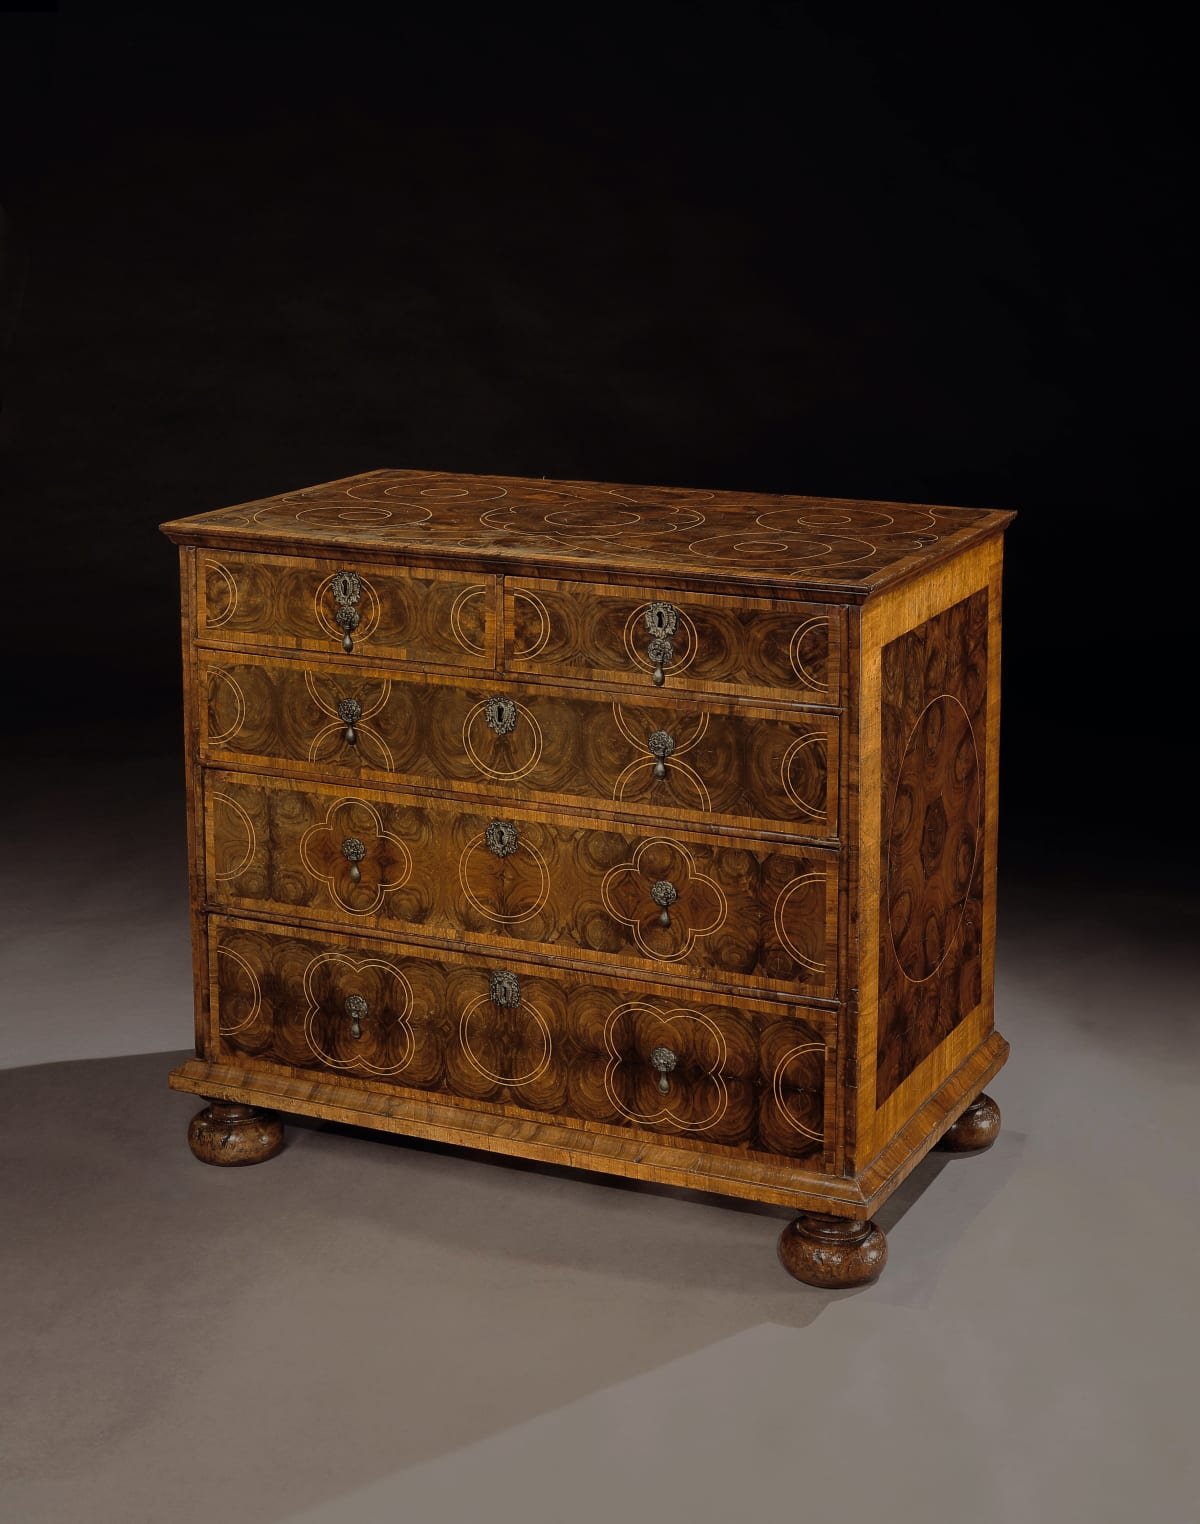 A WILLIAM AND MARY OLIVEWOOD CHEST OF DRAWERS, ENGLISH, CIRCA 1690